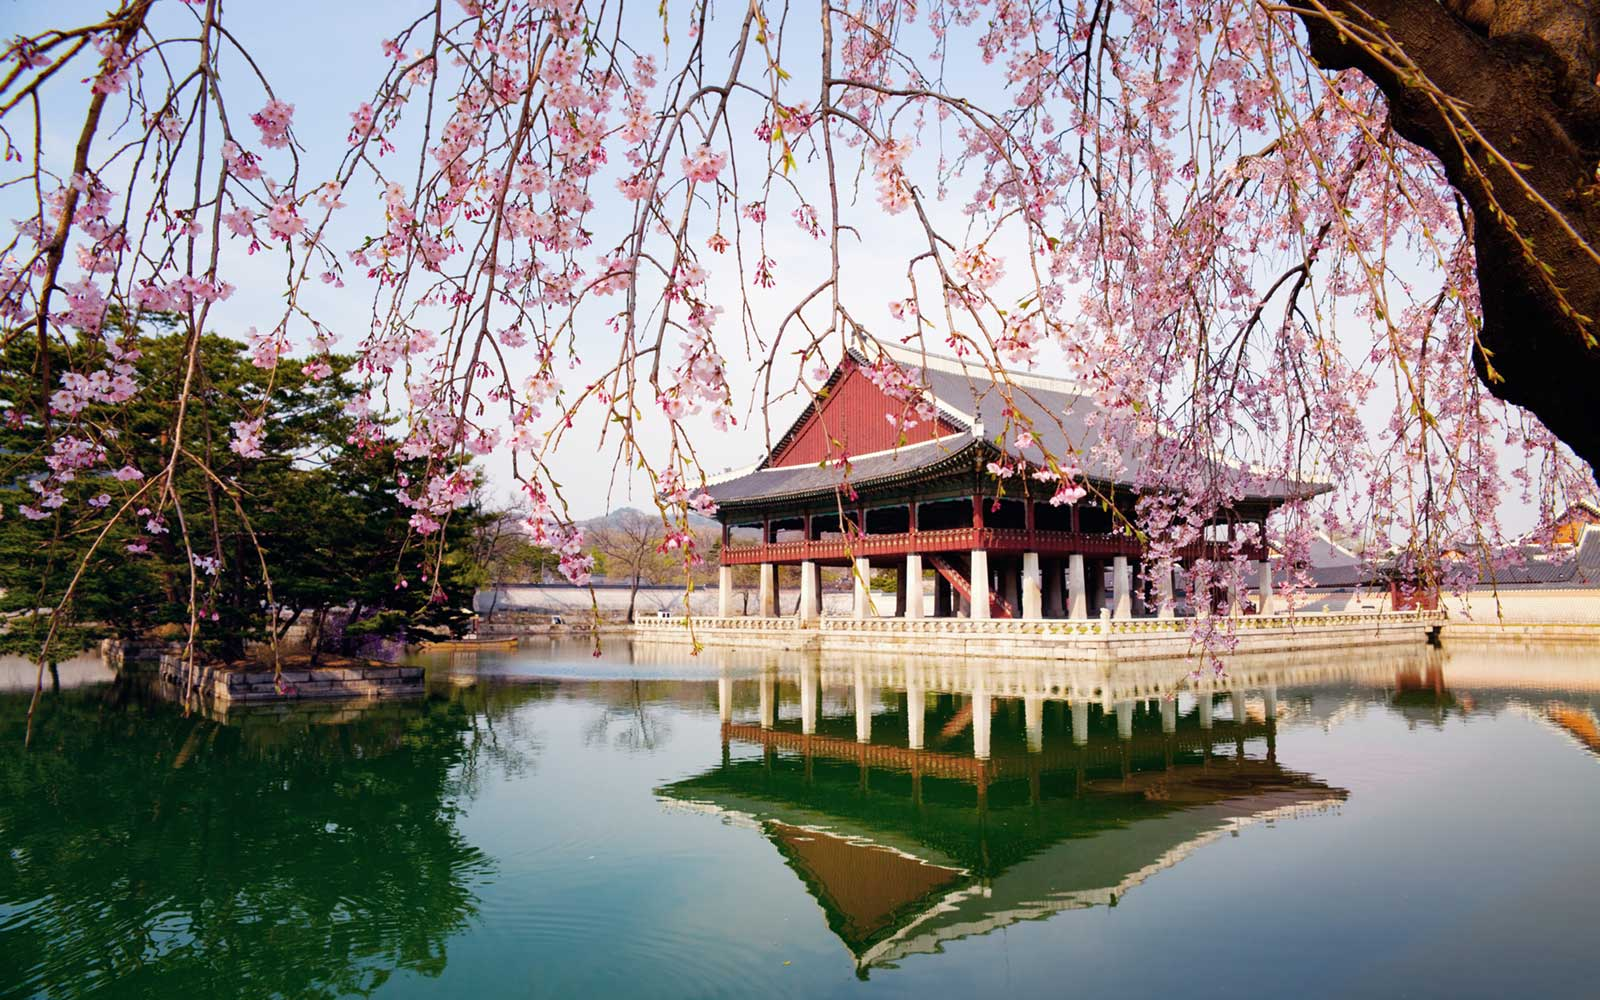 Cherry Blossoms at Gyeongbokgung Palace in Seoul, South Korea